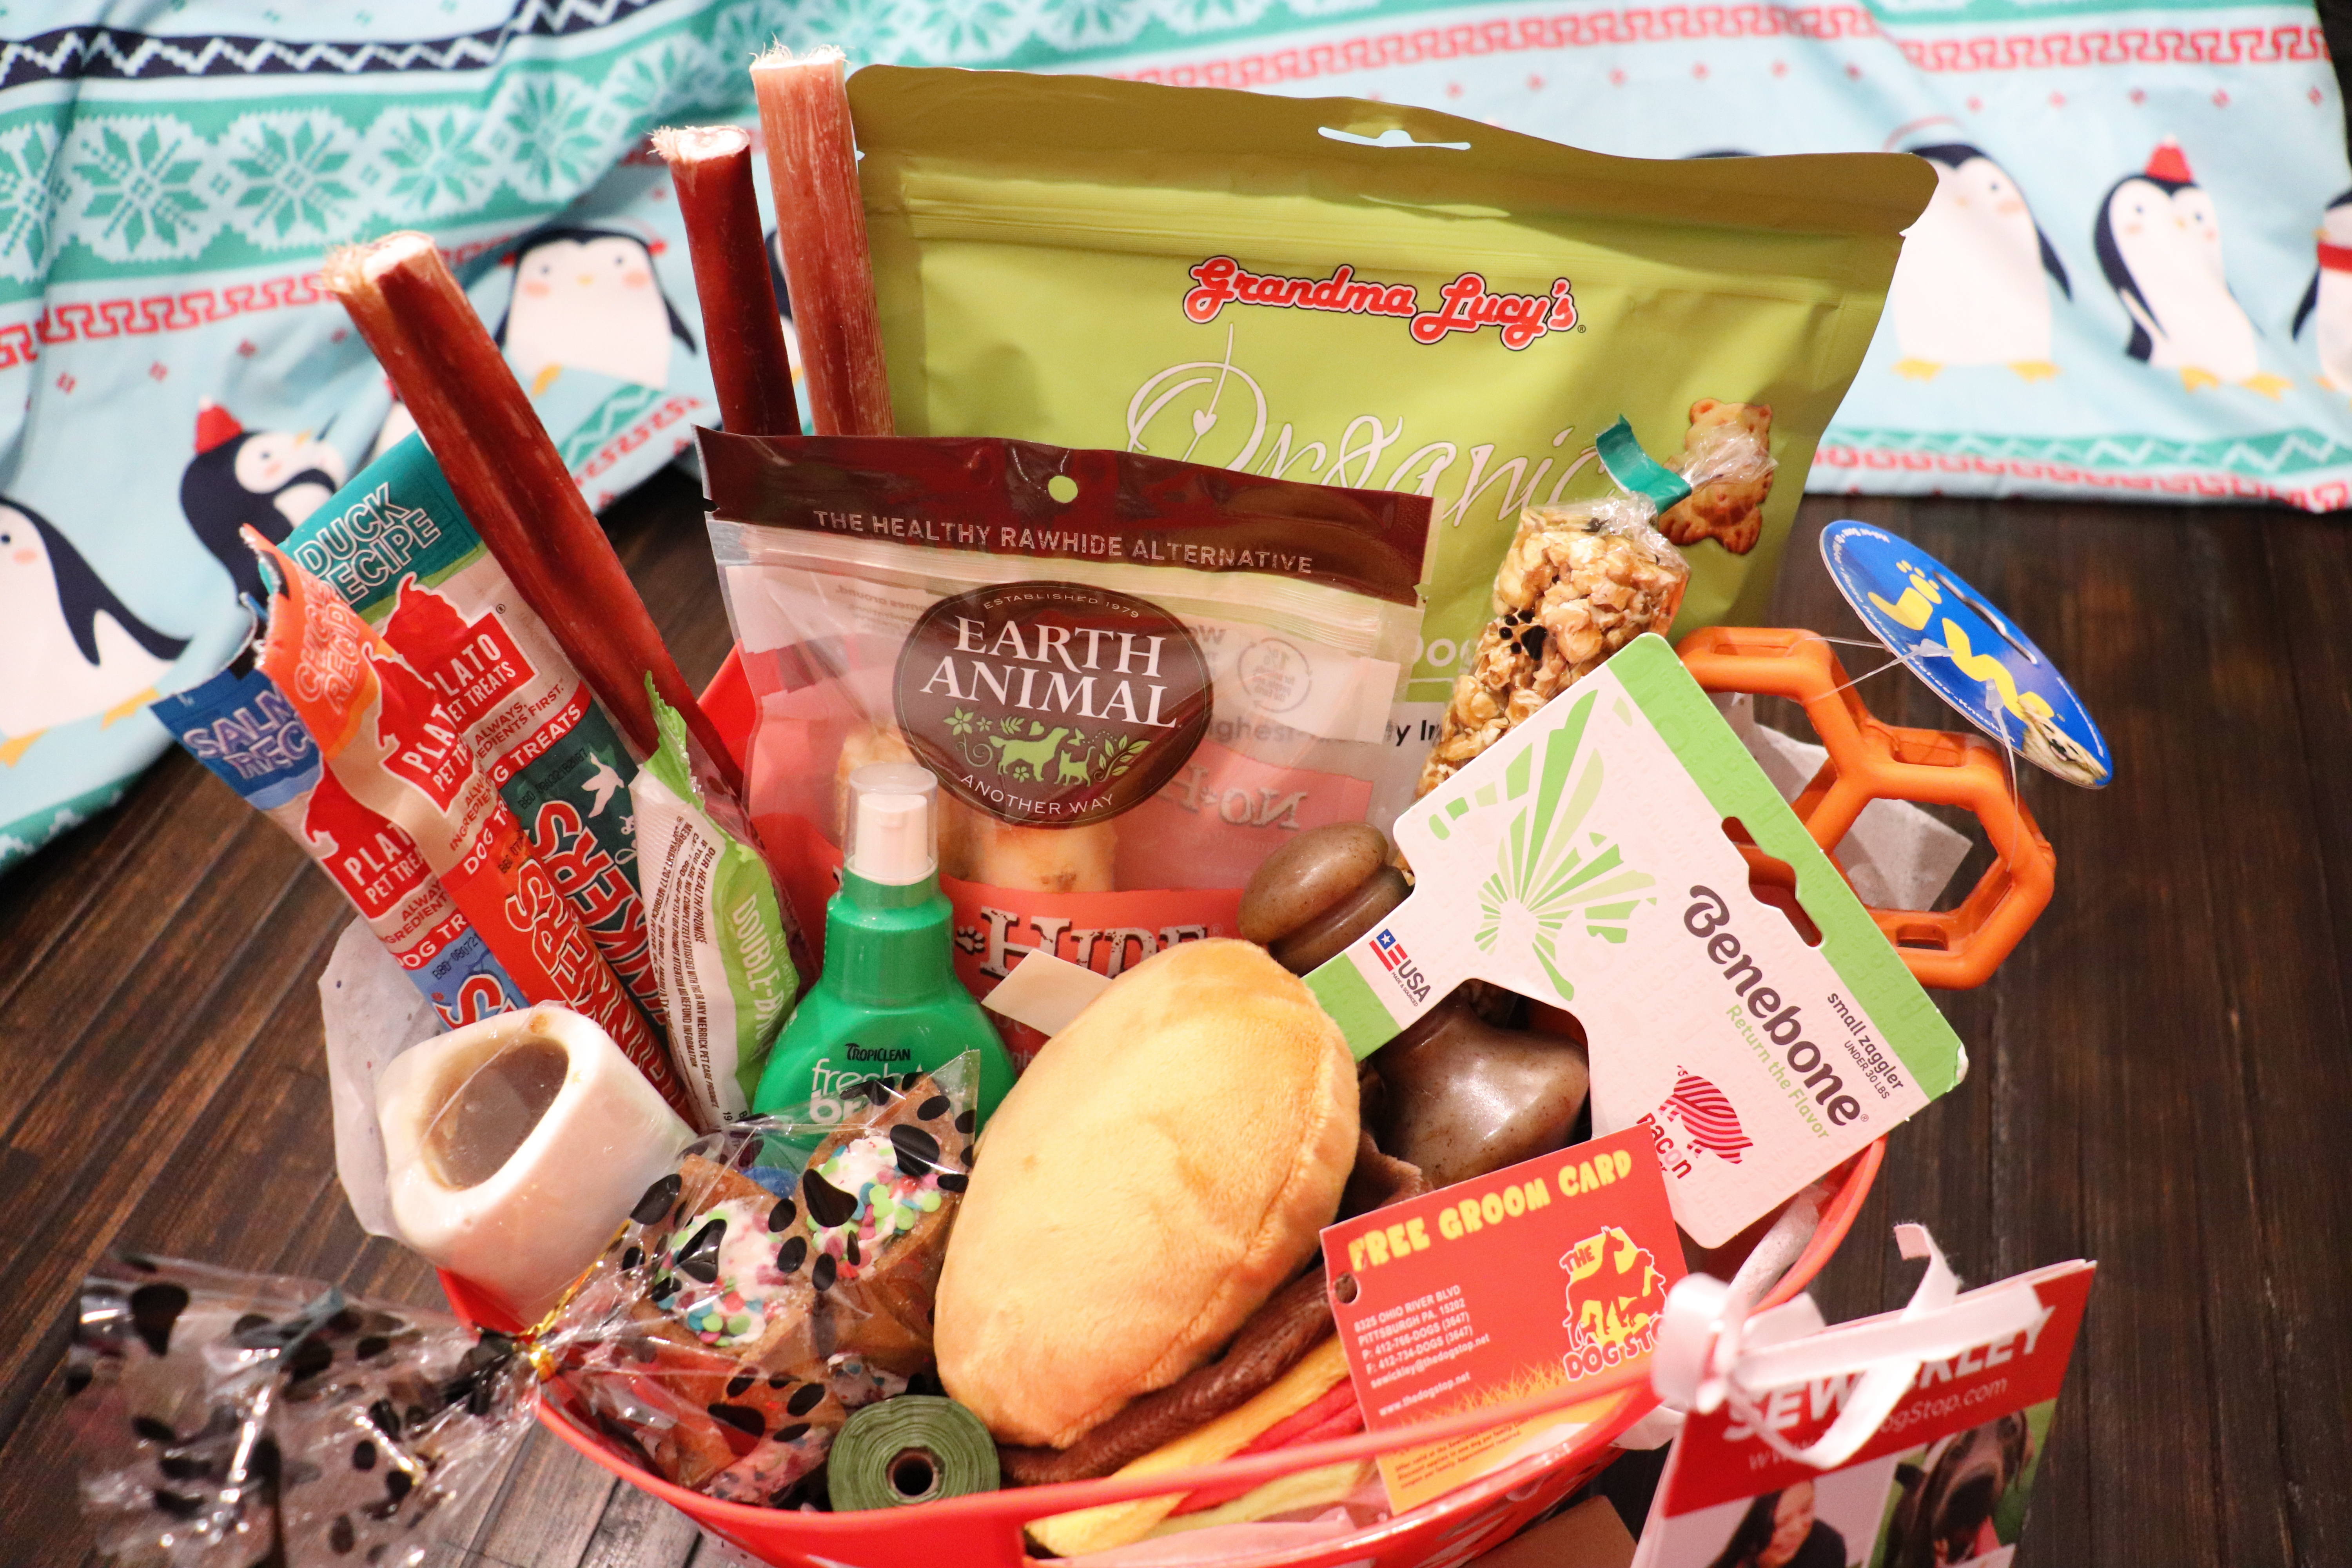 Dog Stop donation basket 2020